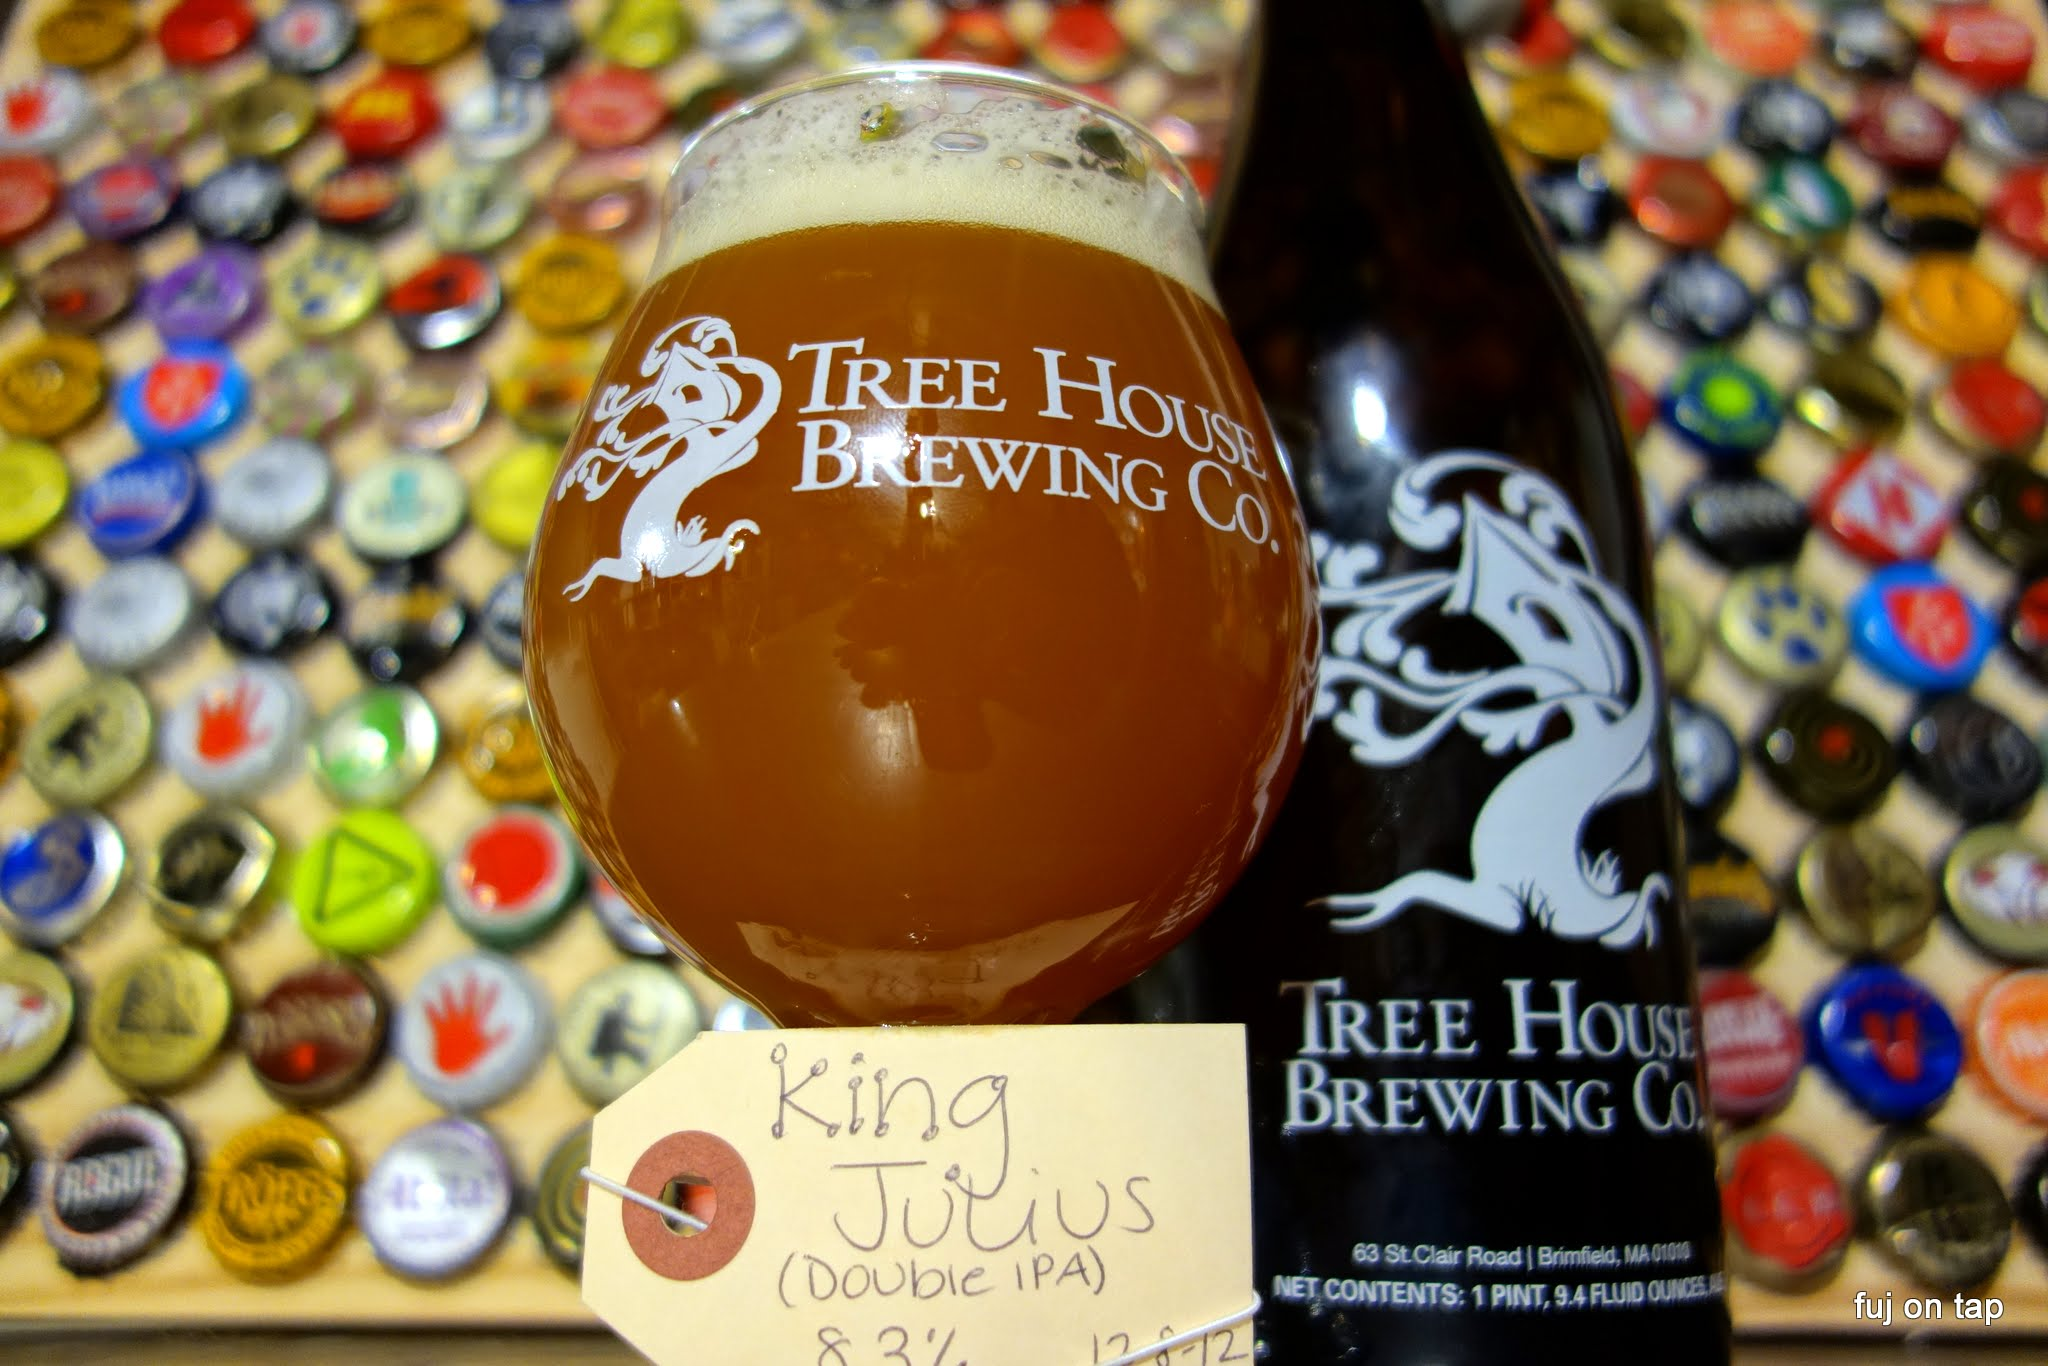 Tree House Brewing Co. King Julius